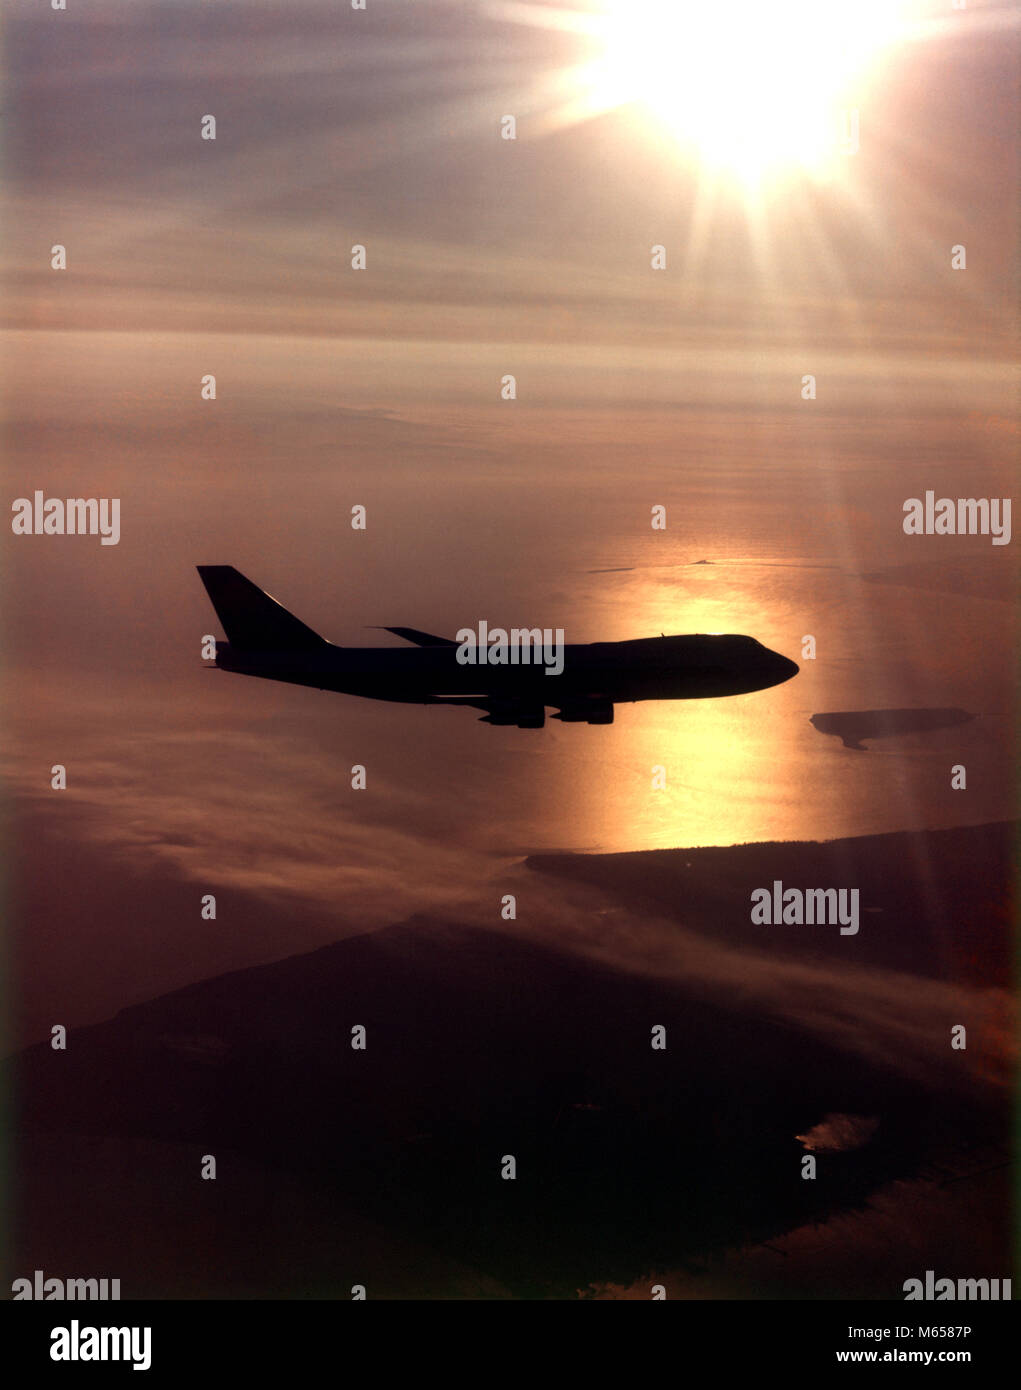 1970s SILHOUETTE BOEING 747 AIRPLANE FLYING IN SUNSET SKY COMMERCIAL AVIATION AIR TRAVEL OVER WATER - ka4346 HAR001 - Stock Image